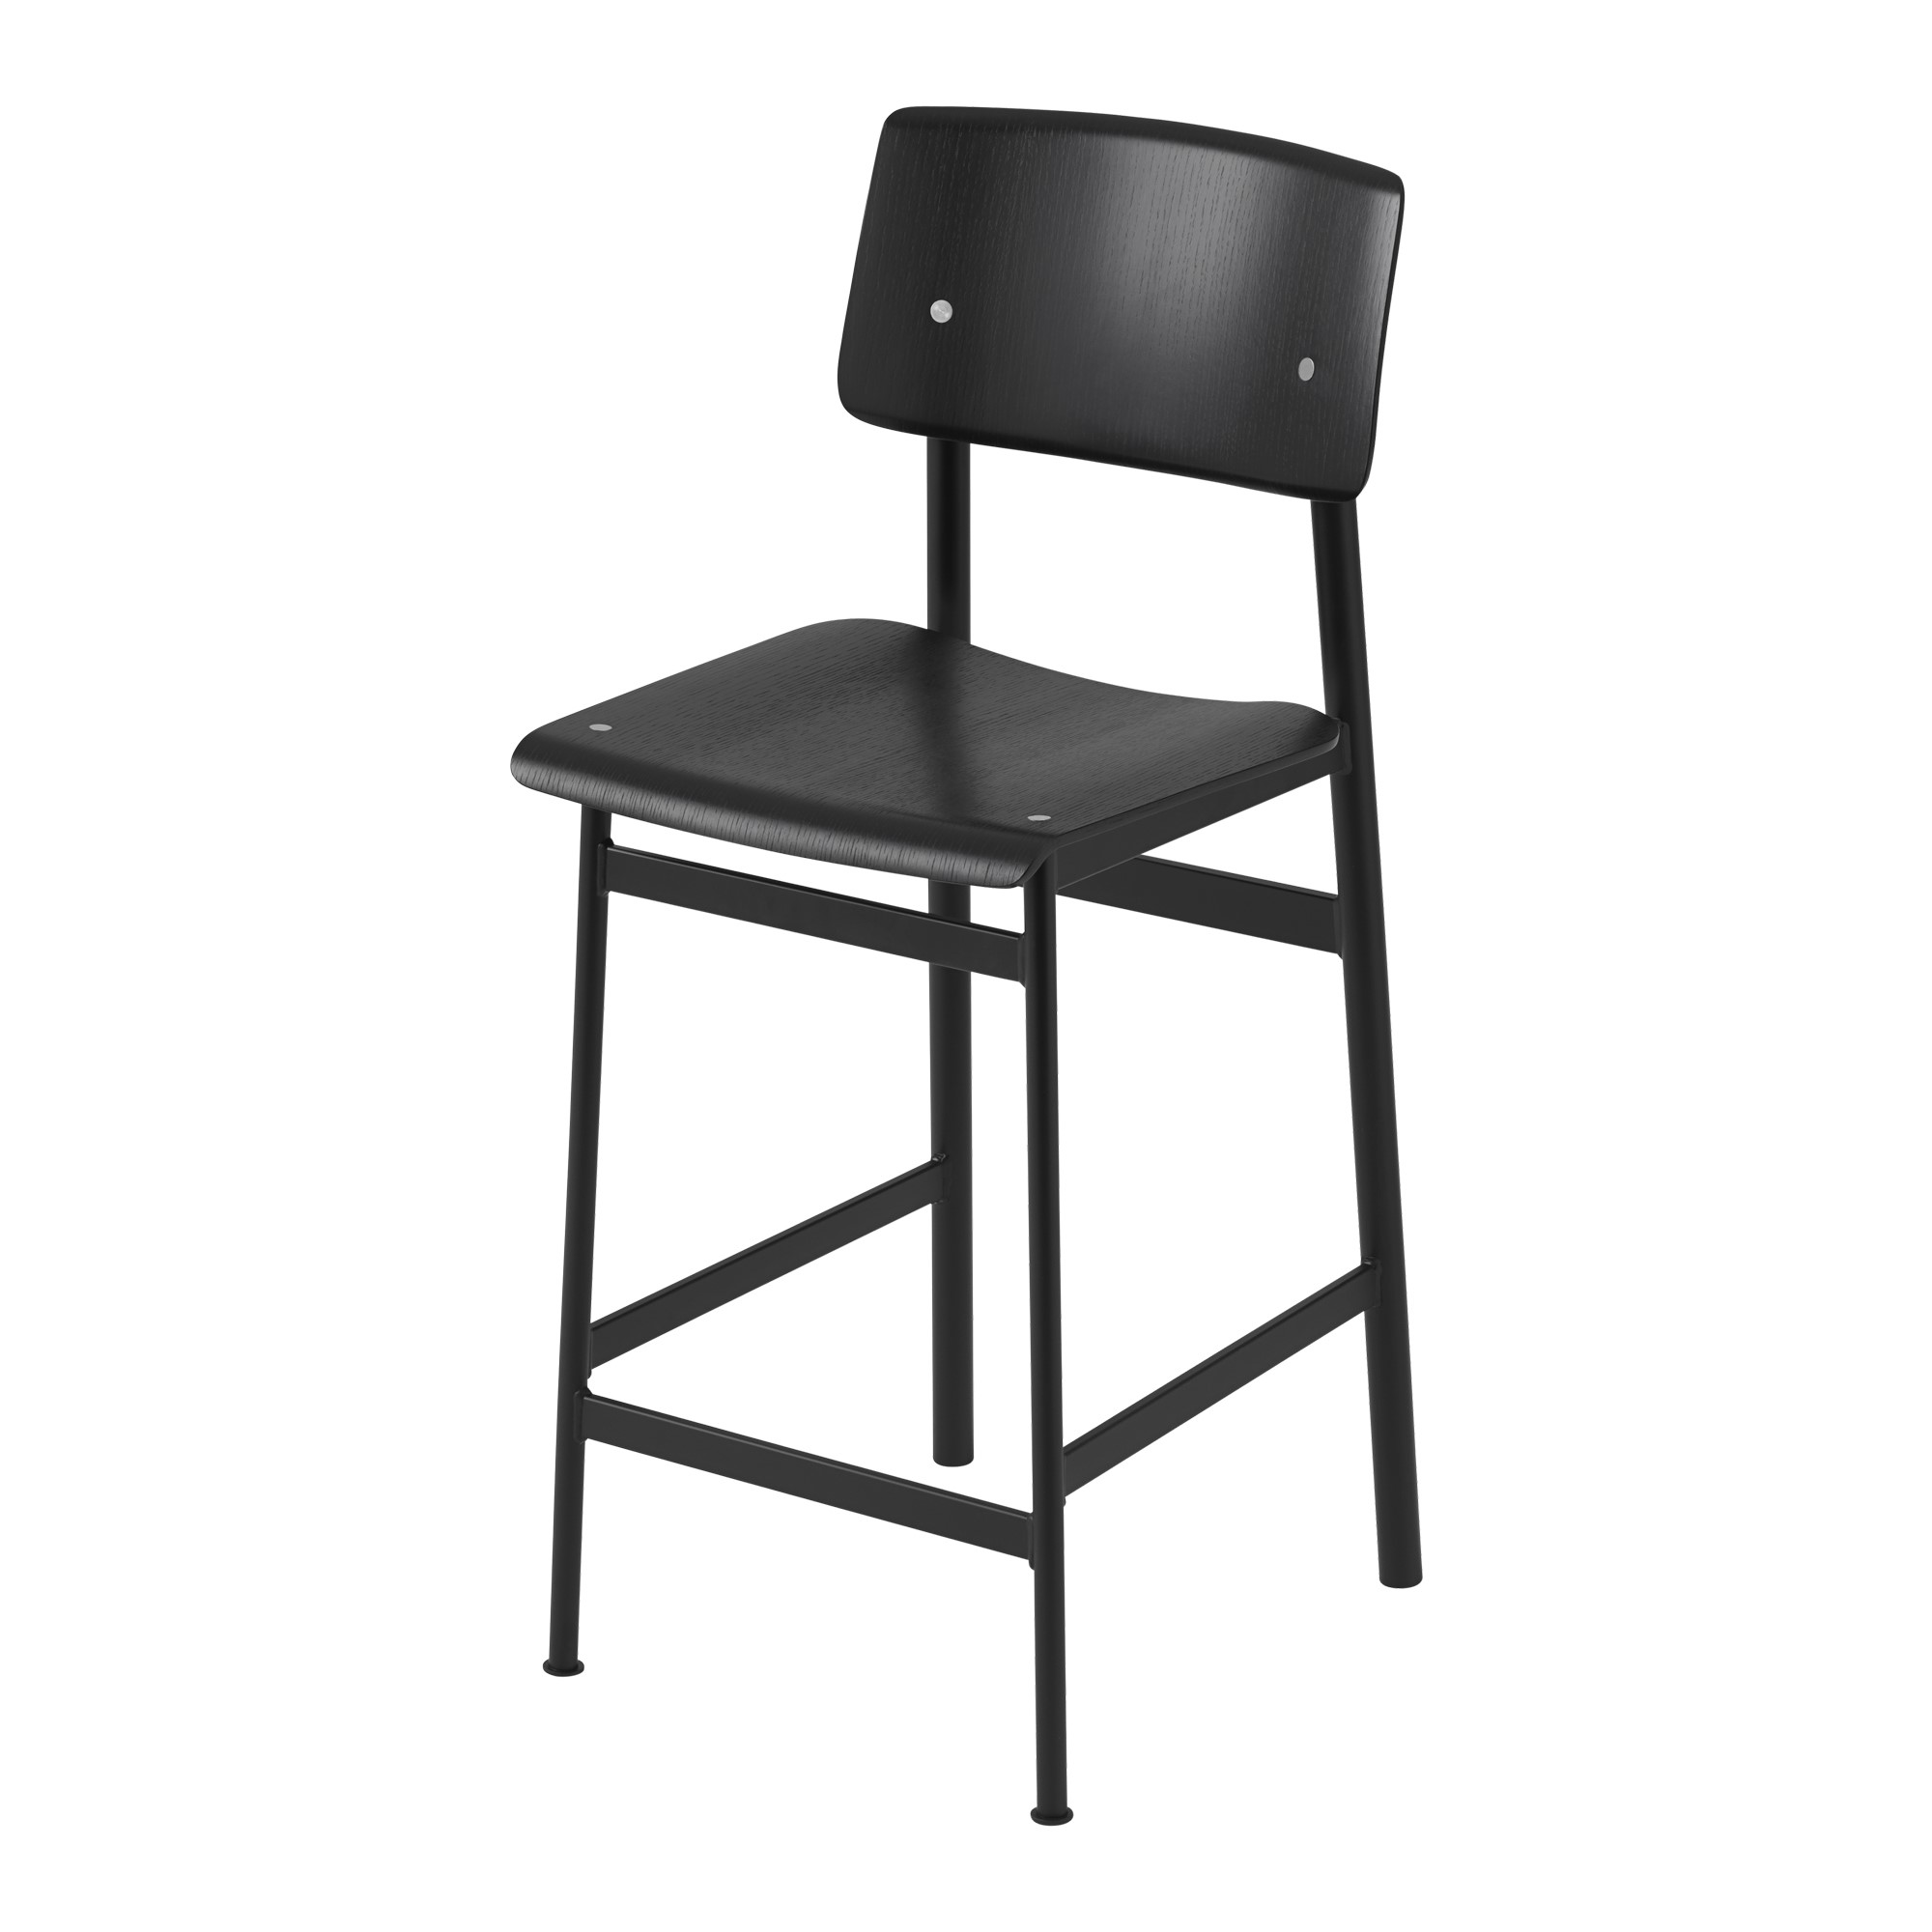 Loft Bar Stool 65 cm BlackBlack